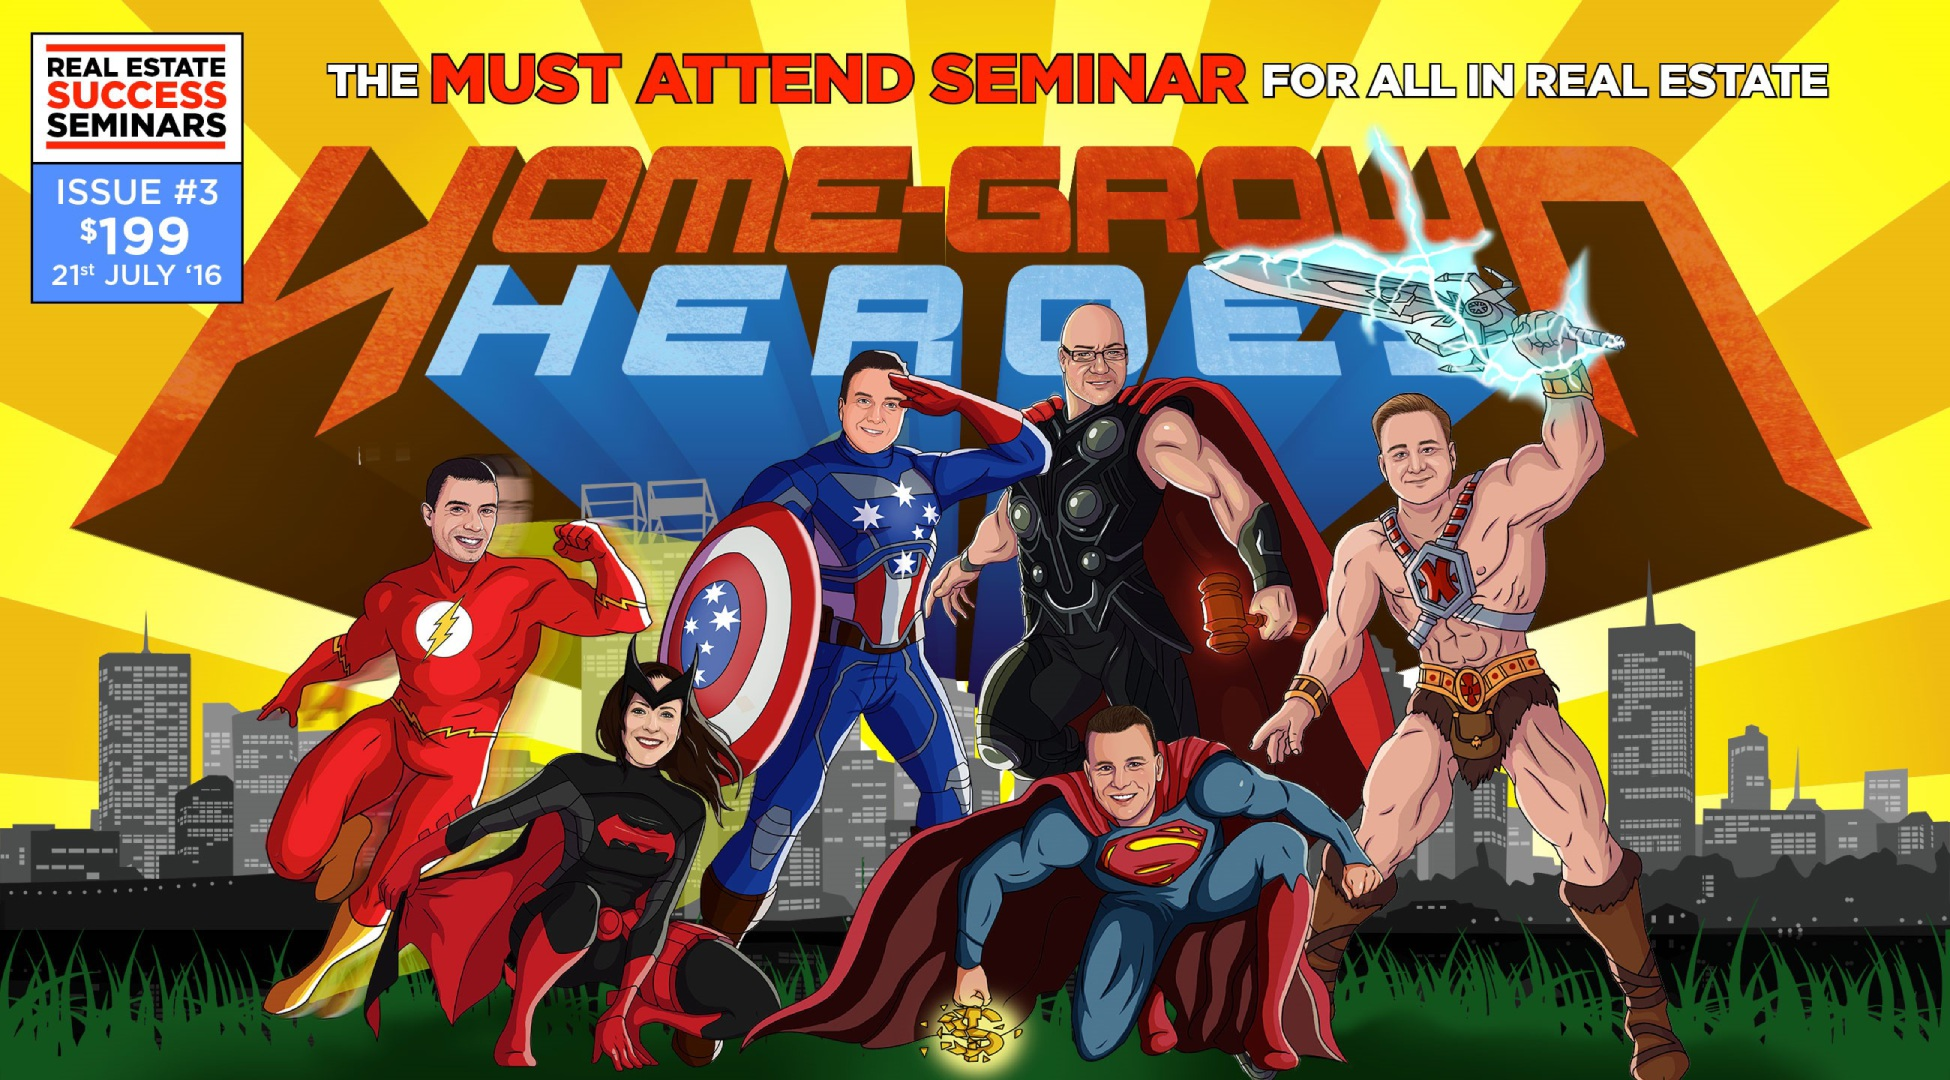 Local agents to share experience as Home Grown Heroes